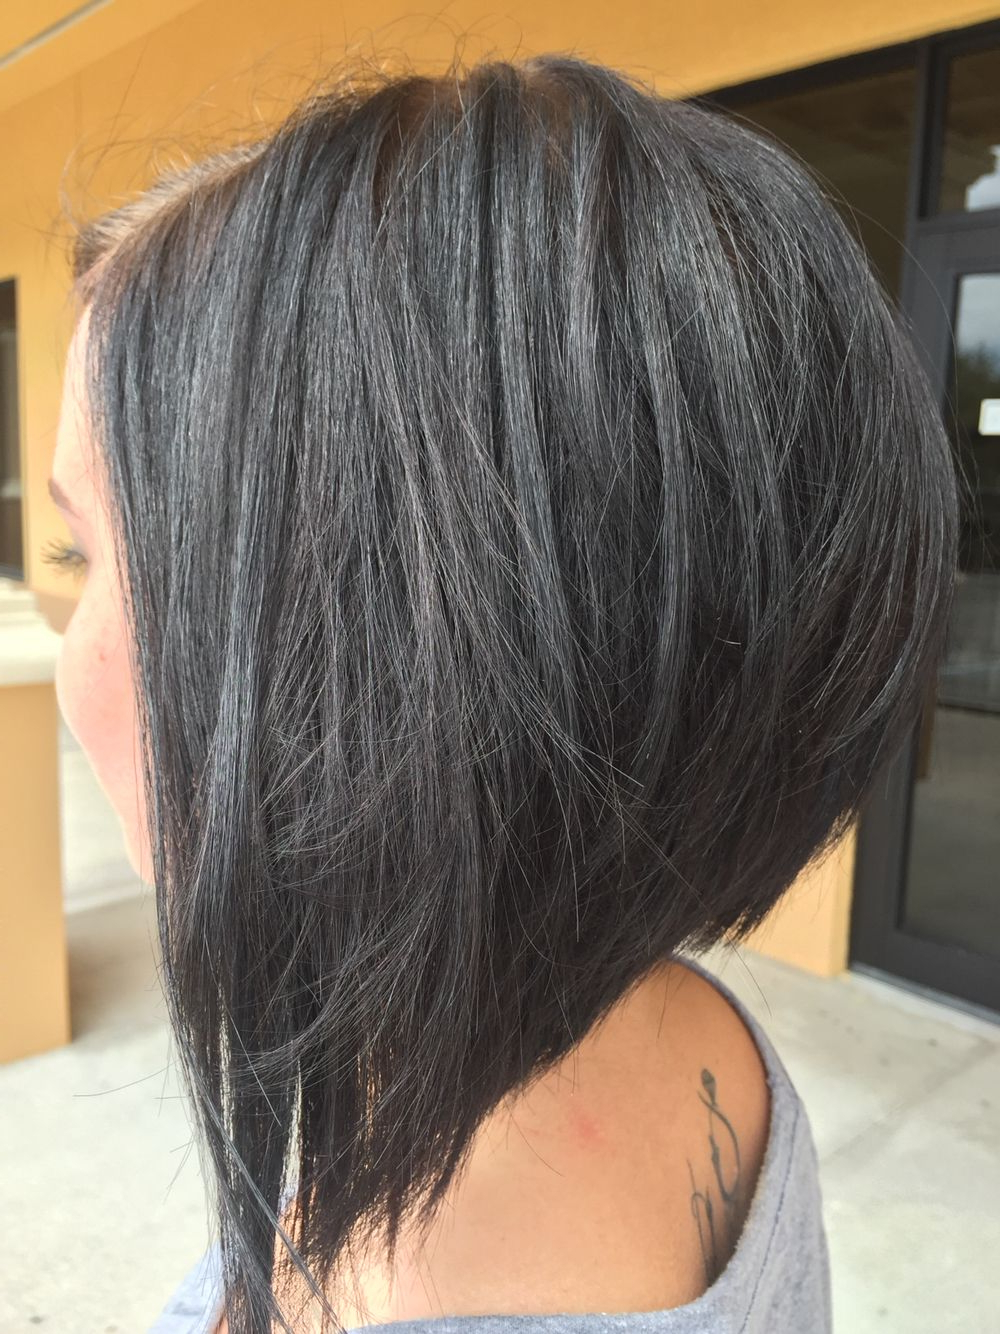 Edgy Bob | Hair In 2018 | Pinterest | Hair, Hair Styles And Hair Cuts Pertaining To Sleek Rounded Inverted Bob Hairstyles (View 11 of 20)